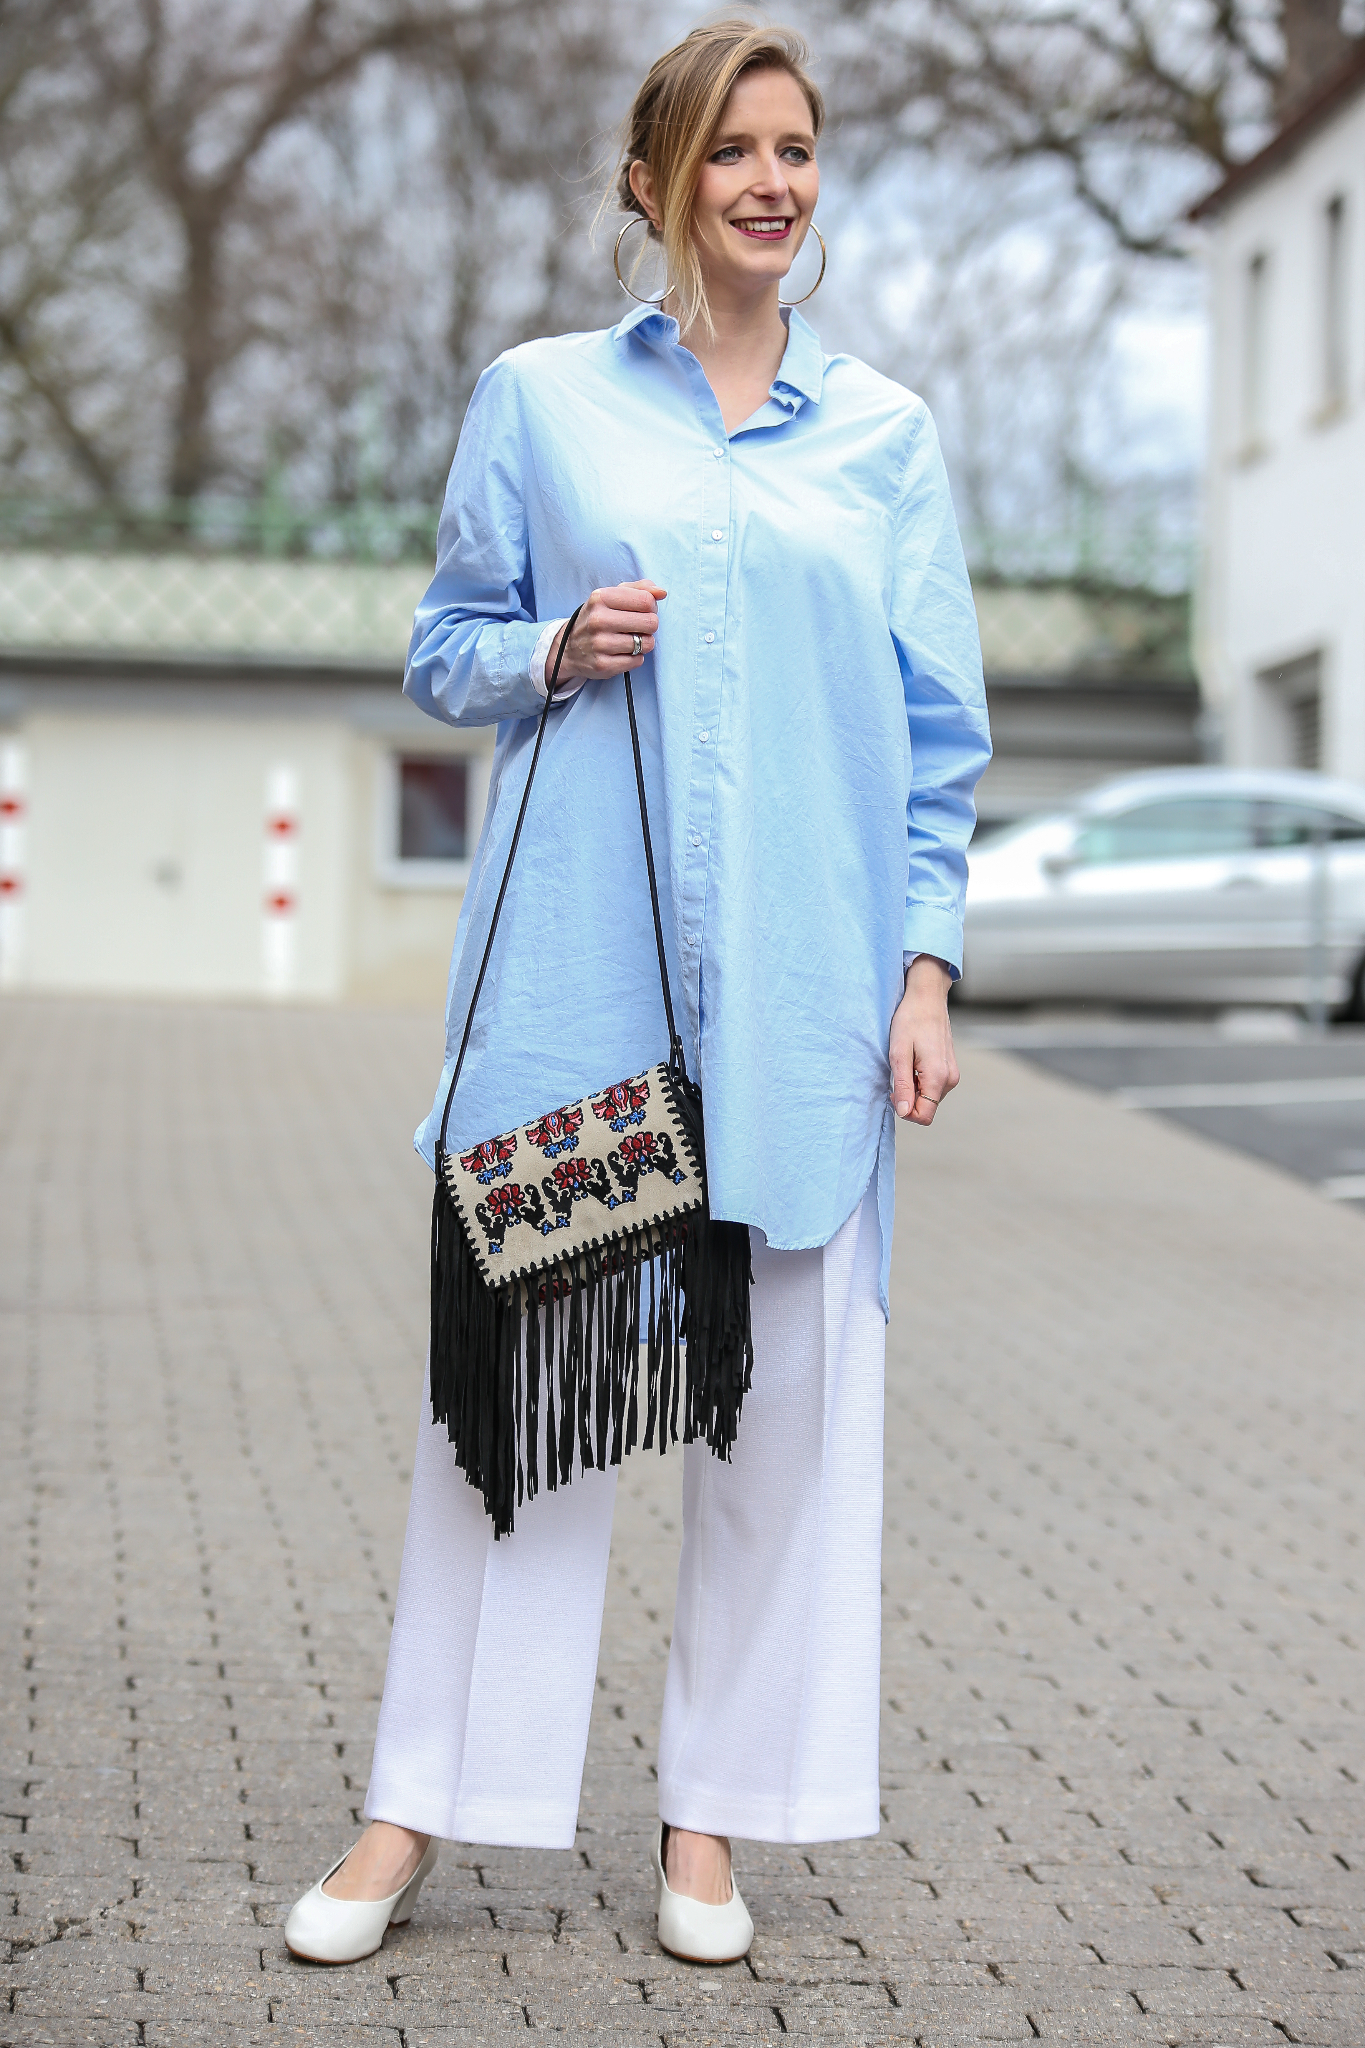 Fashion_Outfit_Popeline_meets_Isabel_Marant-6